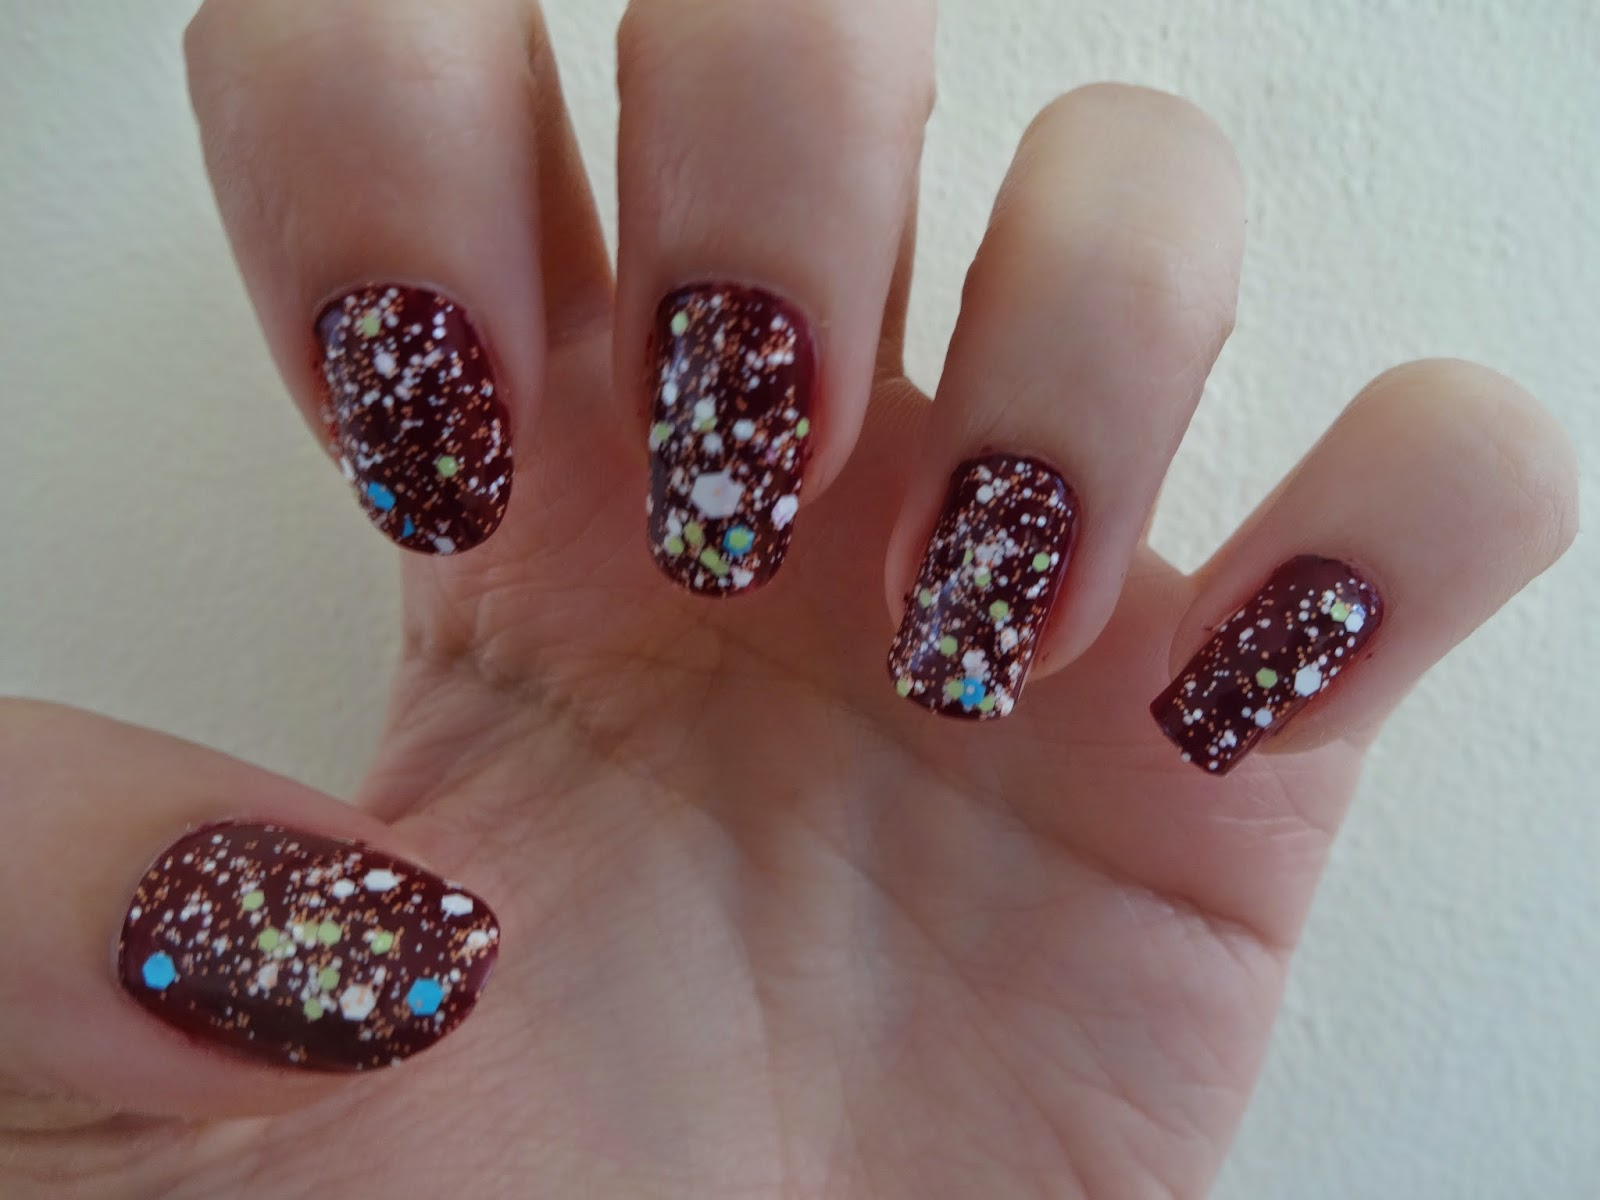 NOTD: Speckled Nails